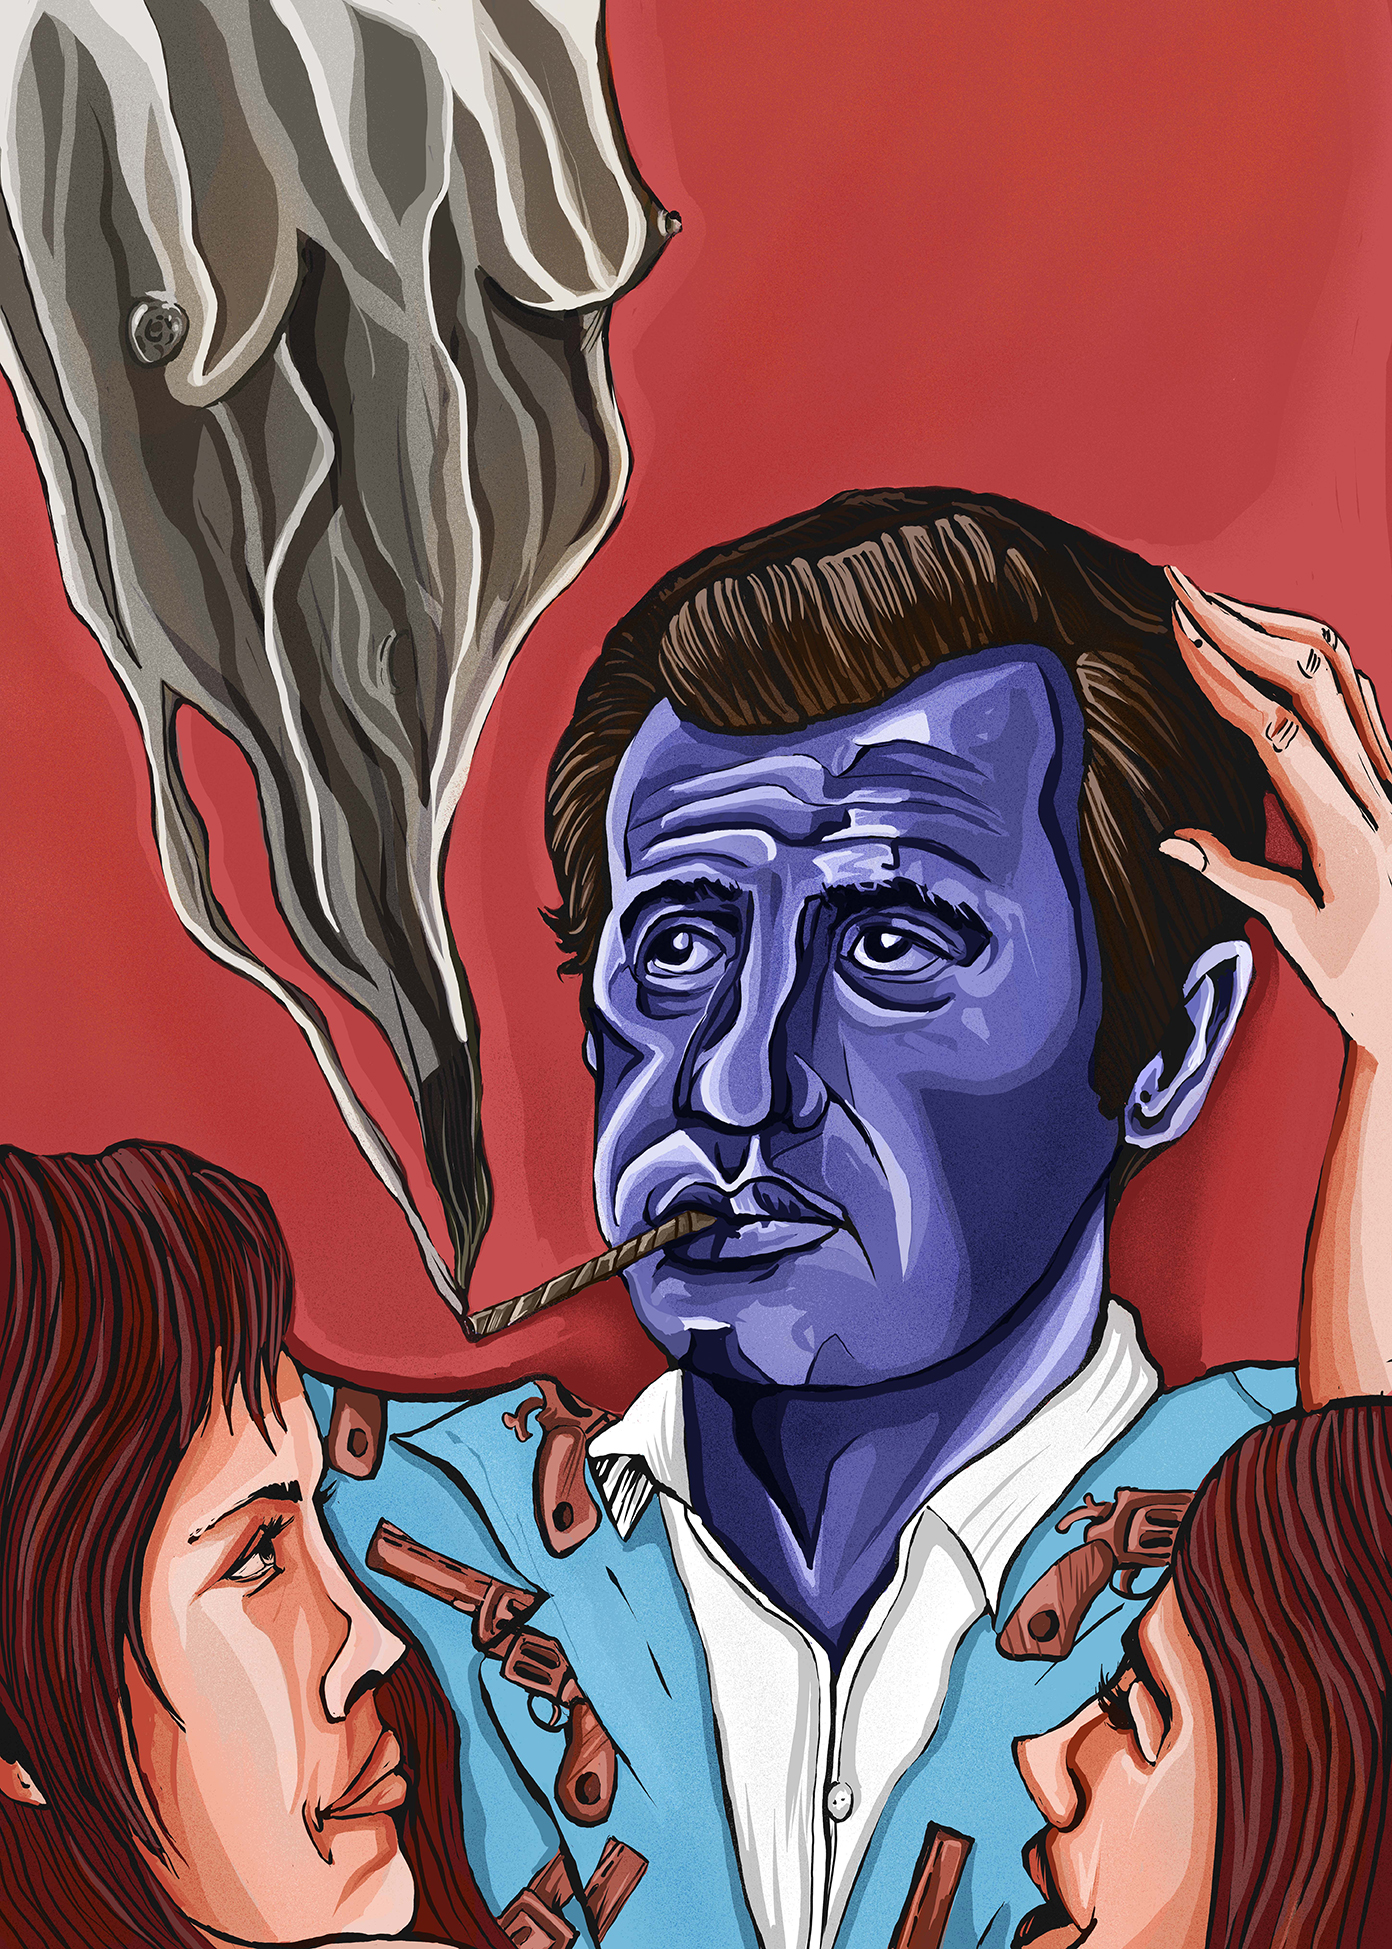 Belmondo et la « culture du viol » - Illustration David Amblard, 2019